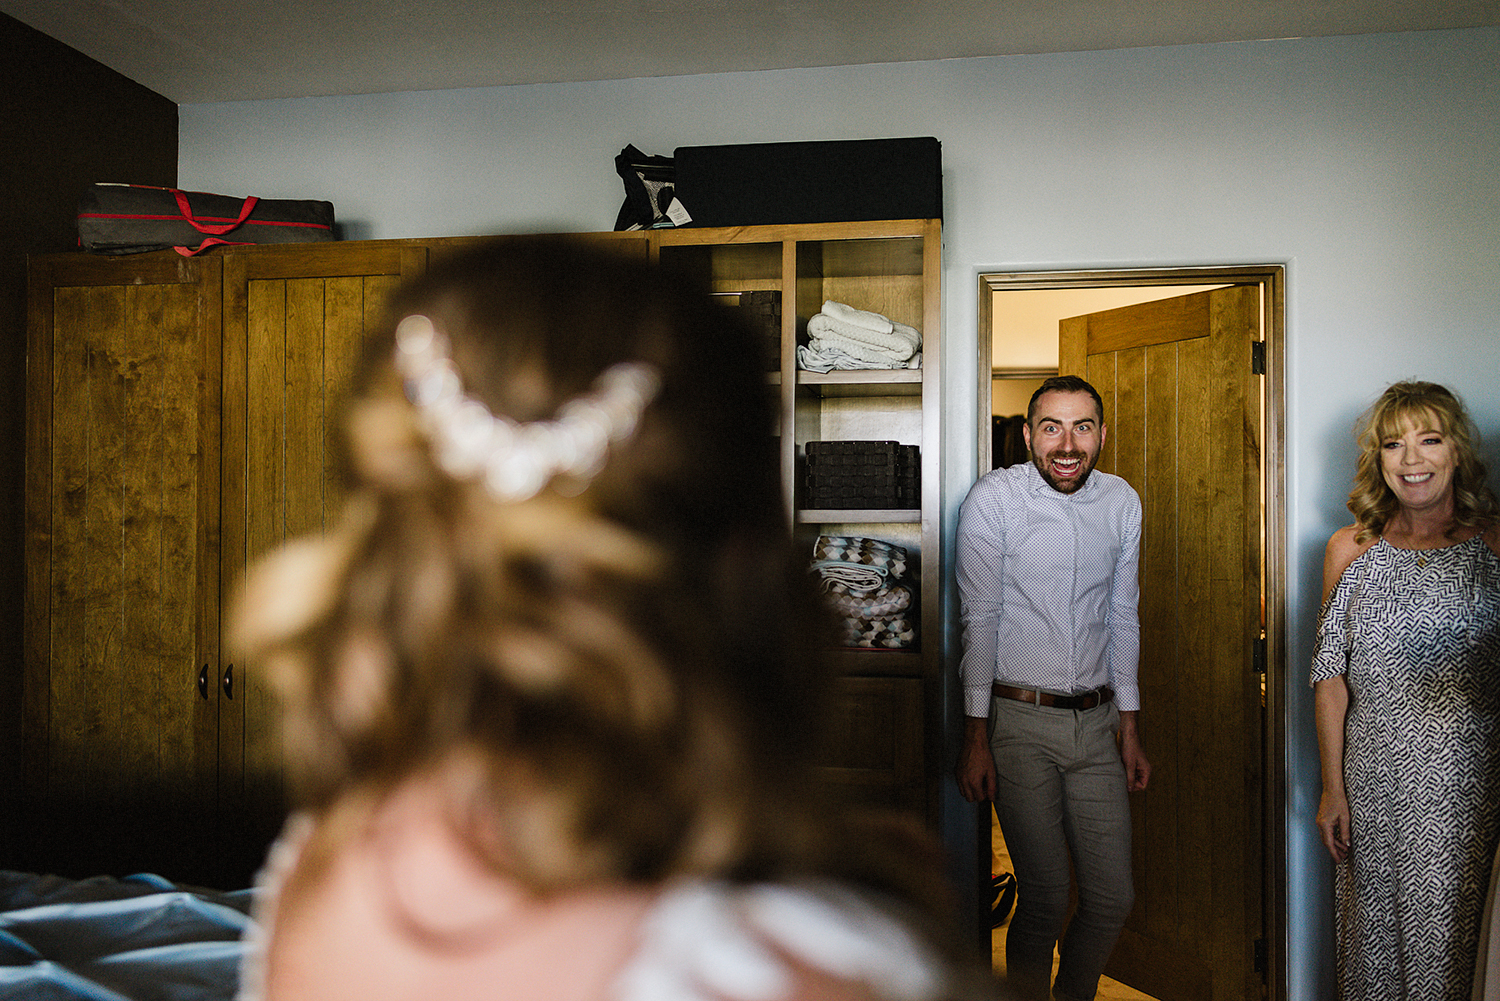 destination-wedding-cabo-san-lucas-ventanas-private-residence-alternative-toronto-wedding-photographer-bride-getting-ready-tattooed-bride-dressing-with-help-from-bridesmaids-candid-moments-artistic-documentary-best-friend-first-look.jpg